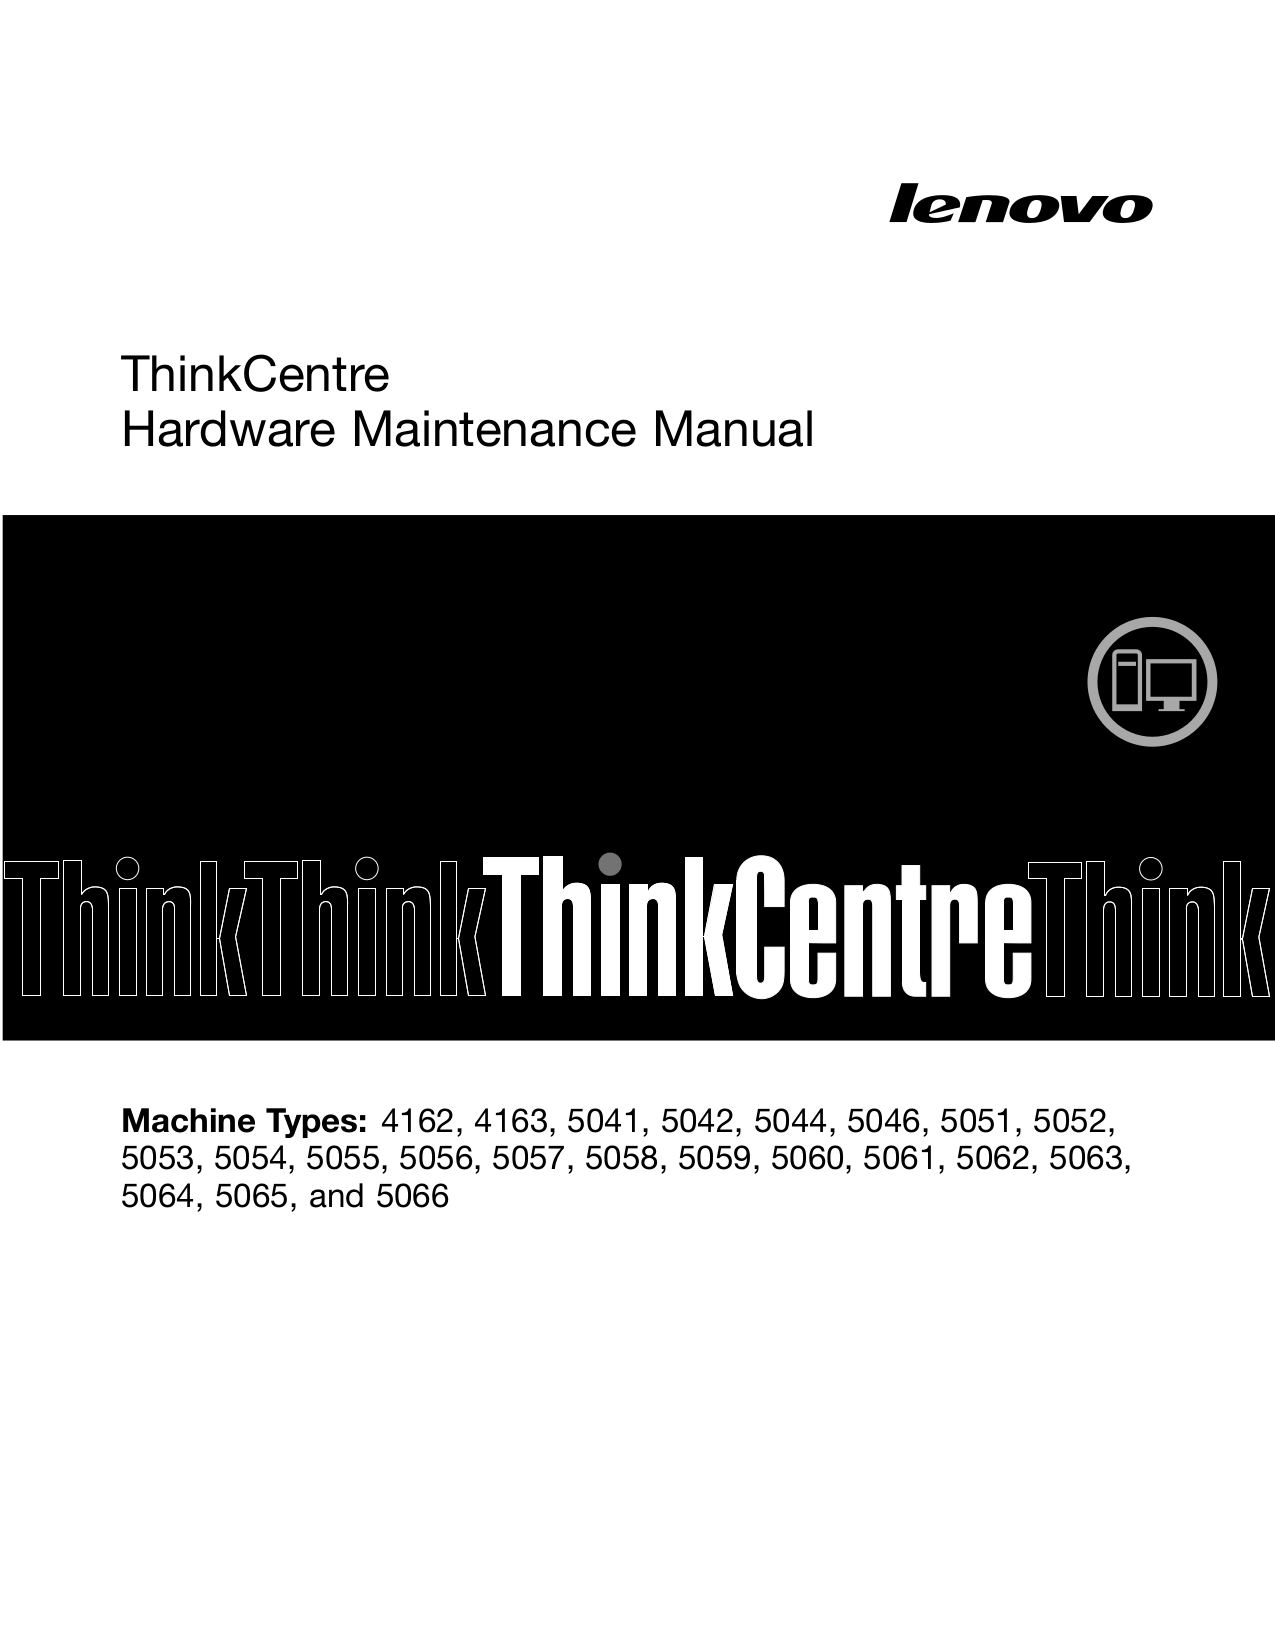 pdf for Lenovo Desktop ThinkCentre M75e 5061 manual